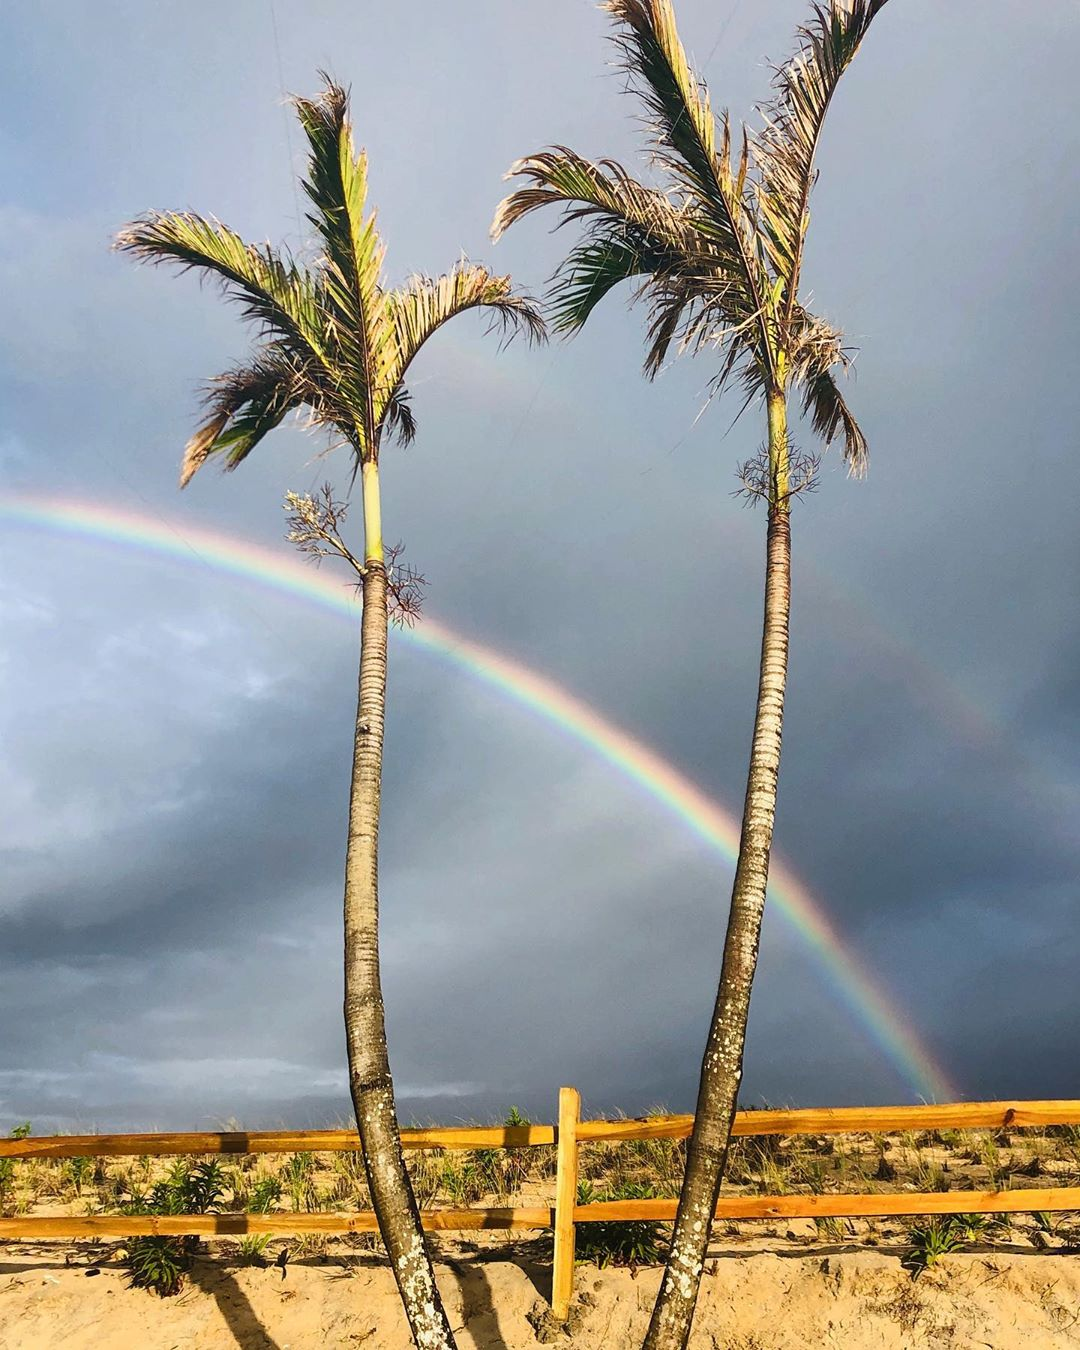 LBI Keep your pot of gold, we'll take the palm trees under our rainbows. Come join u…